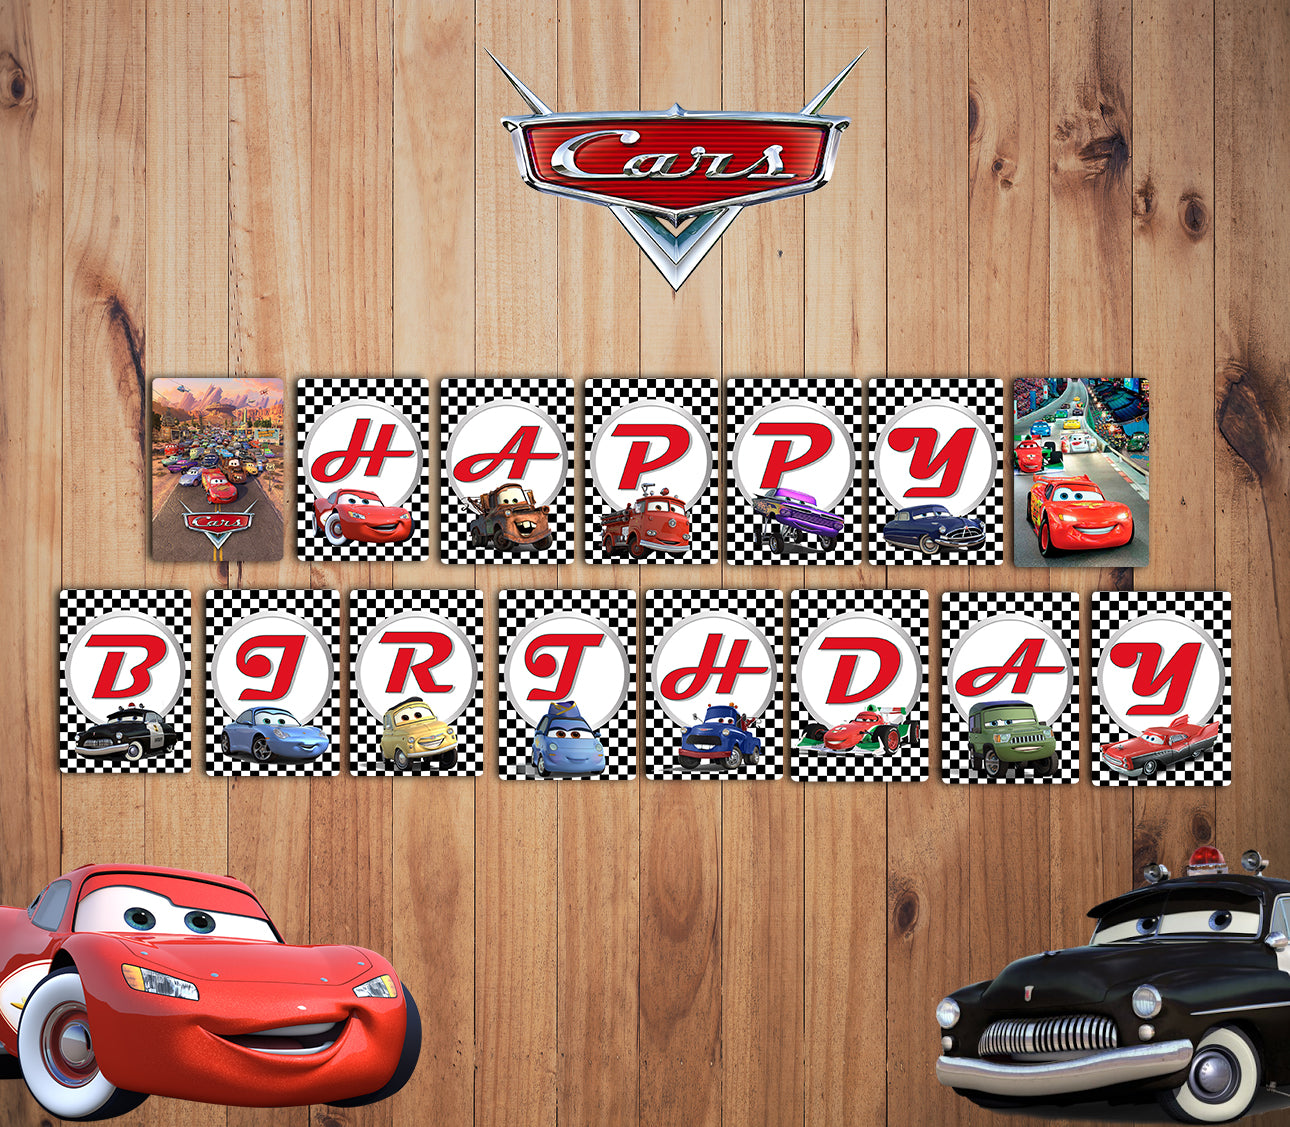 Disney cars party package cars birthday under construction banner disney cars party package cars birthday under construction banner banner bag solutioingenieria Image collections